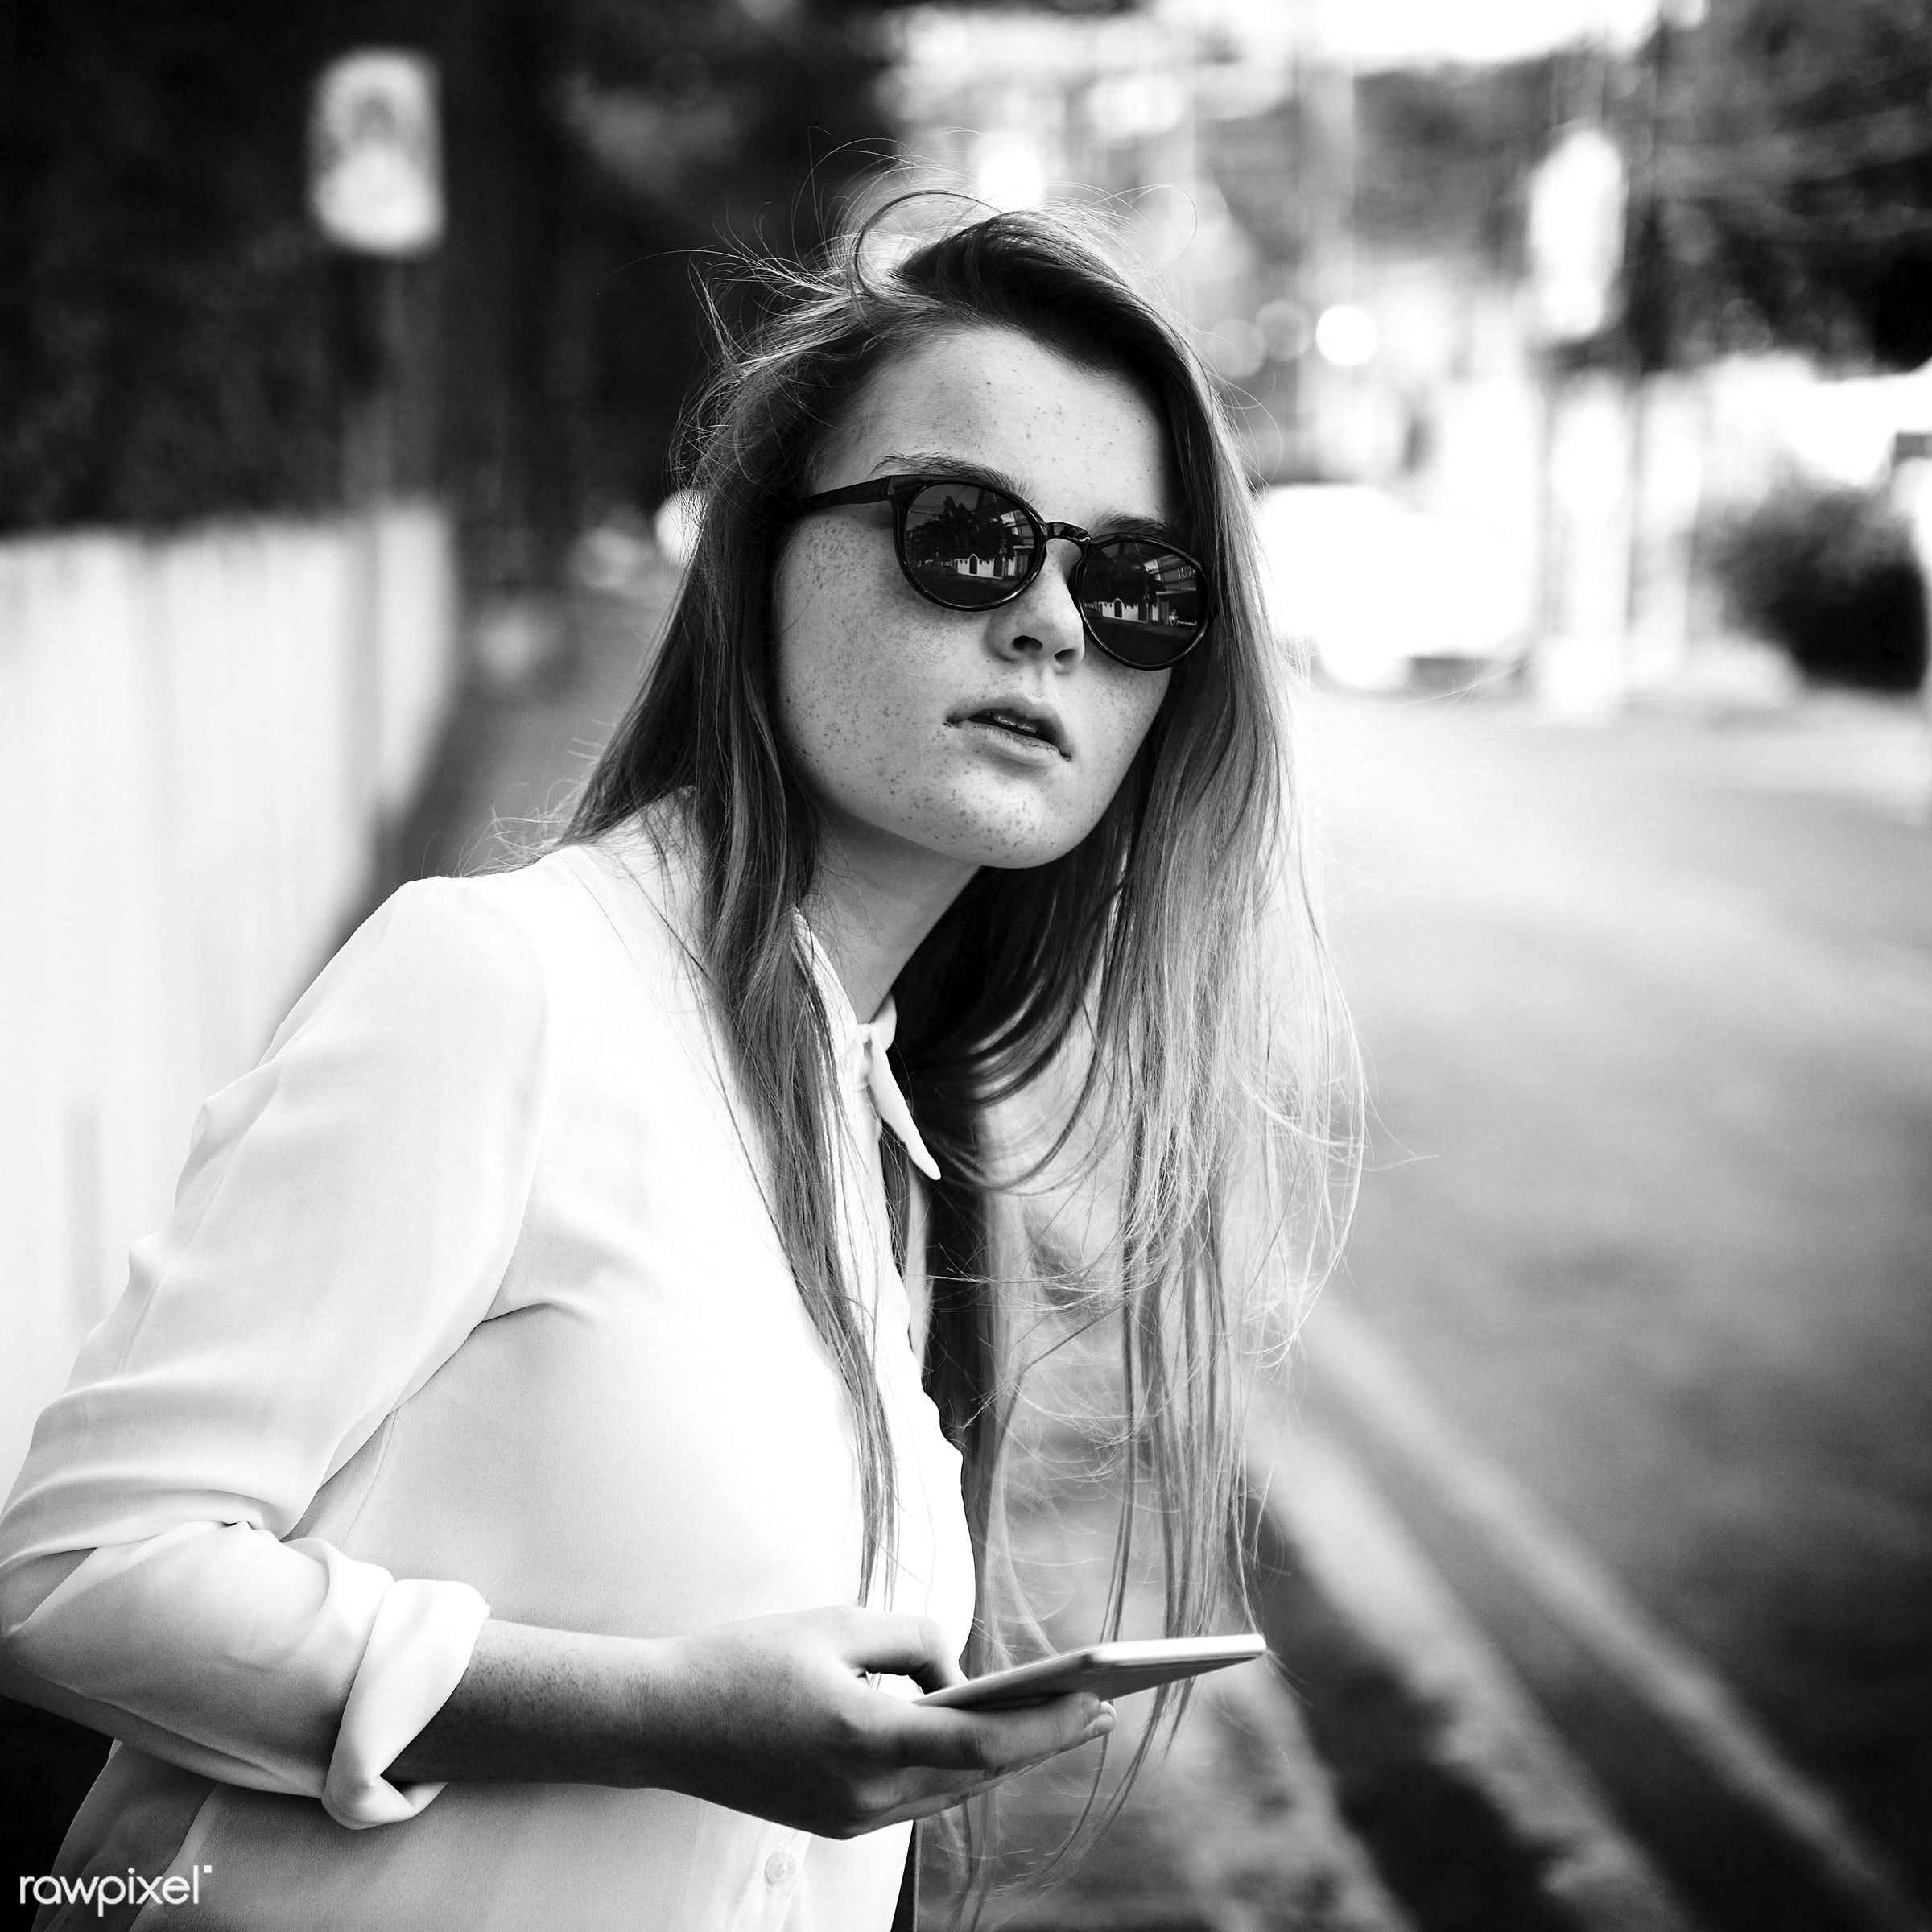 Girl Traveling Holiday Vacation Street Journey Concept - alone, cellphone, cheerful, communication, connection, device,...